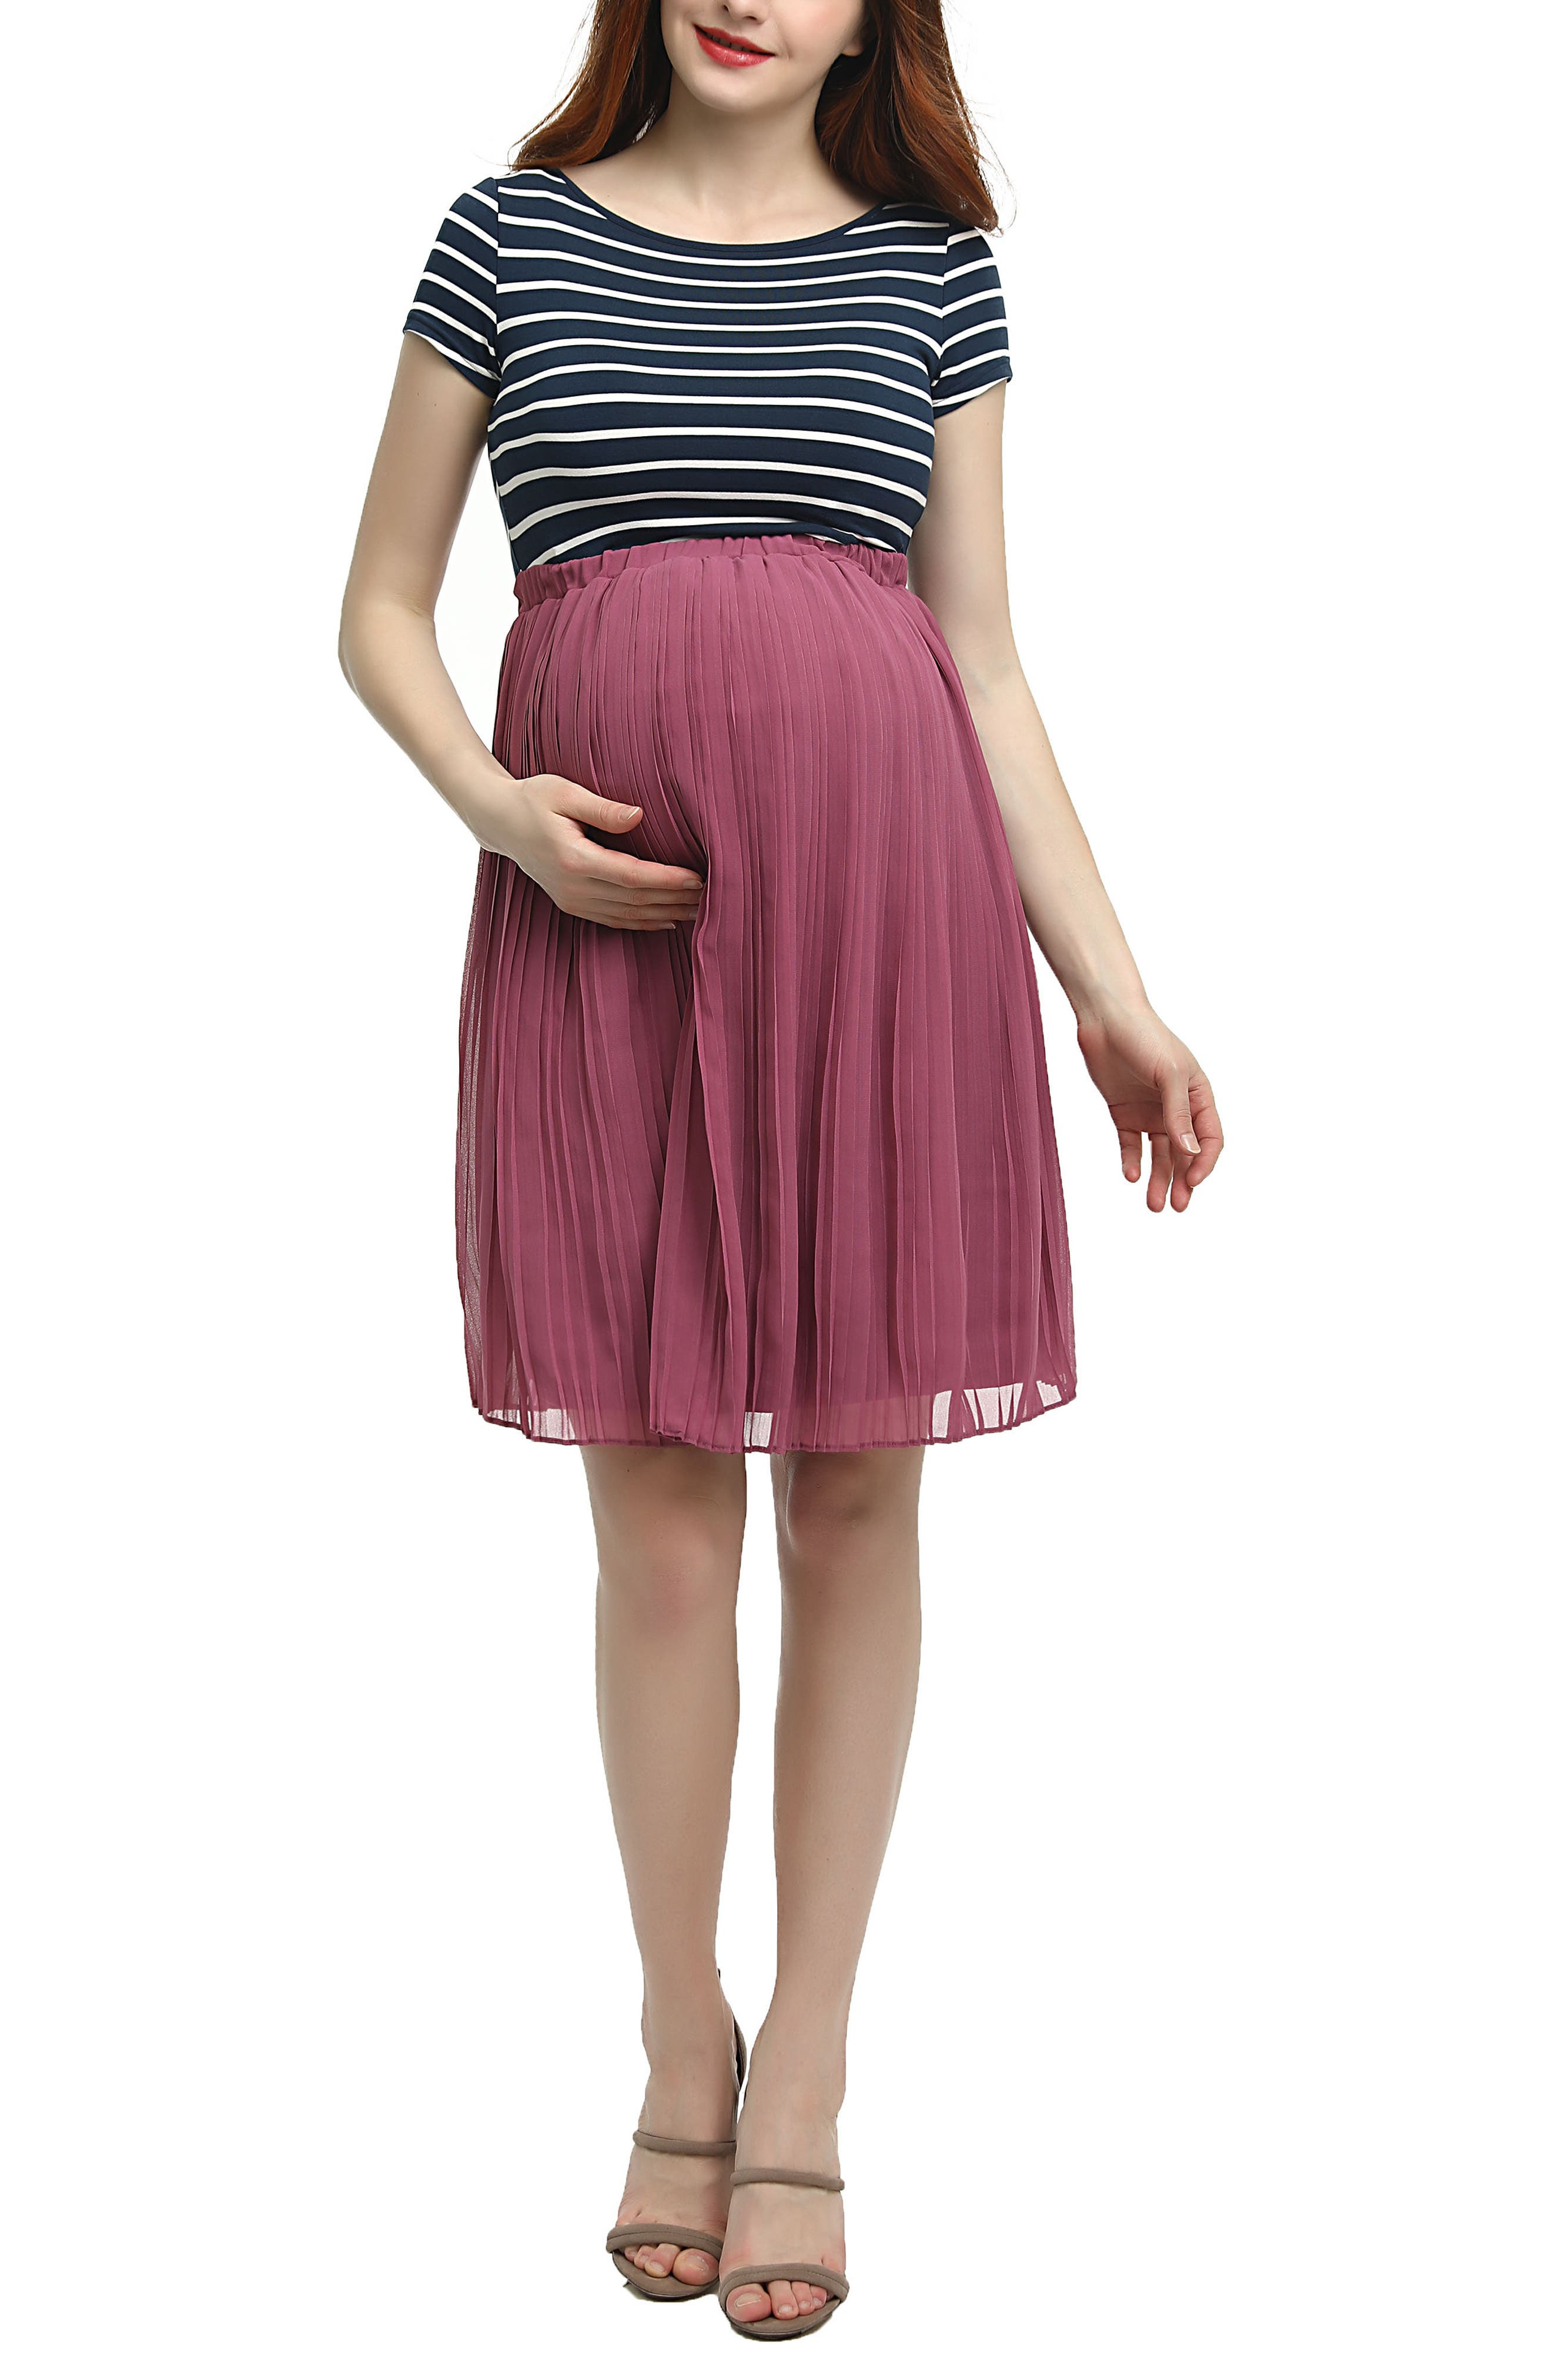 Everly Stripe Pleated Maternity Dress,                         Main,                         color, Multicolored